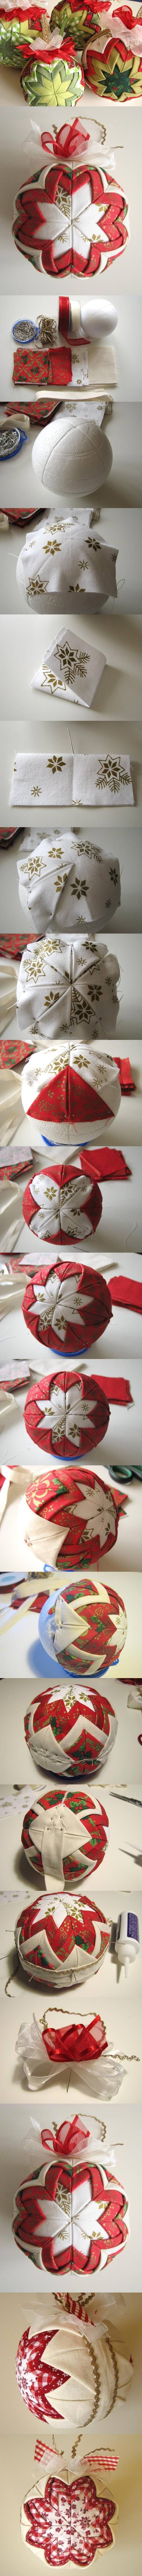 diy, tutorial by diyforever site has lots of picture tutorials for multiple projects.